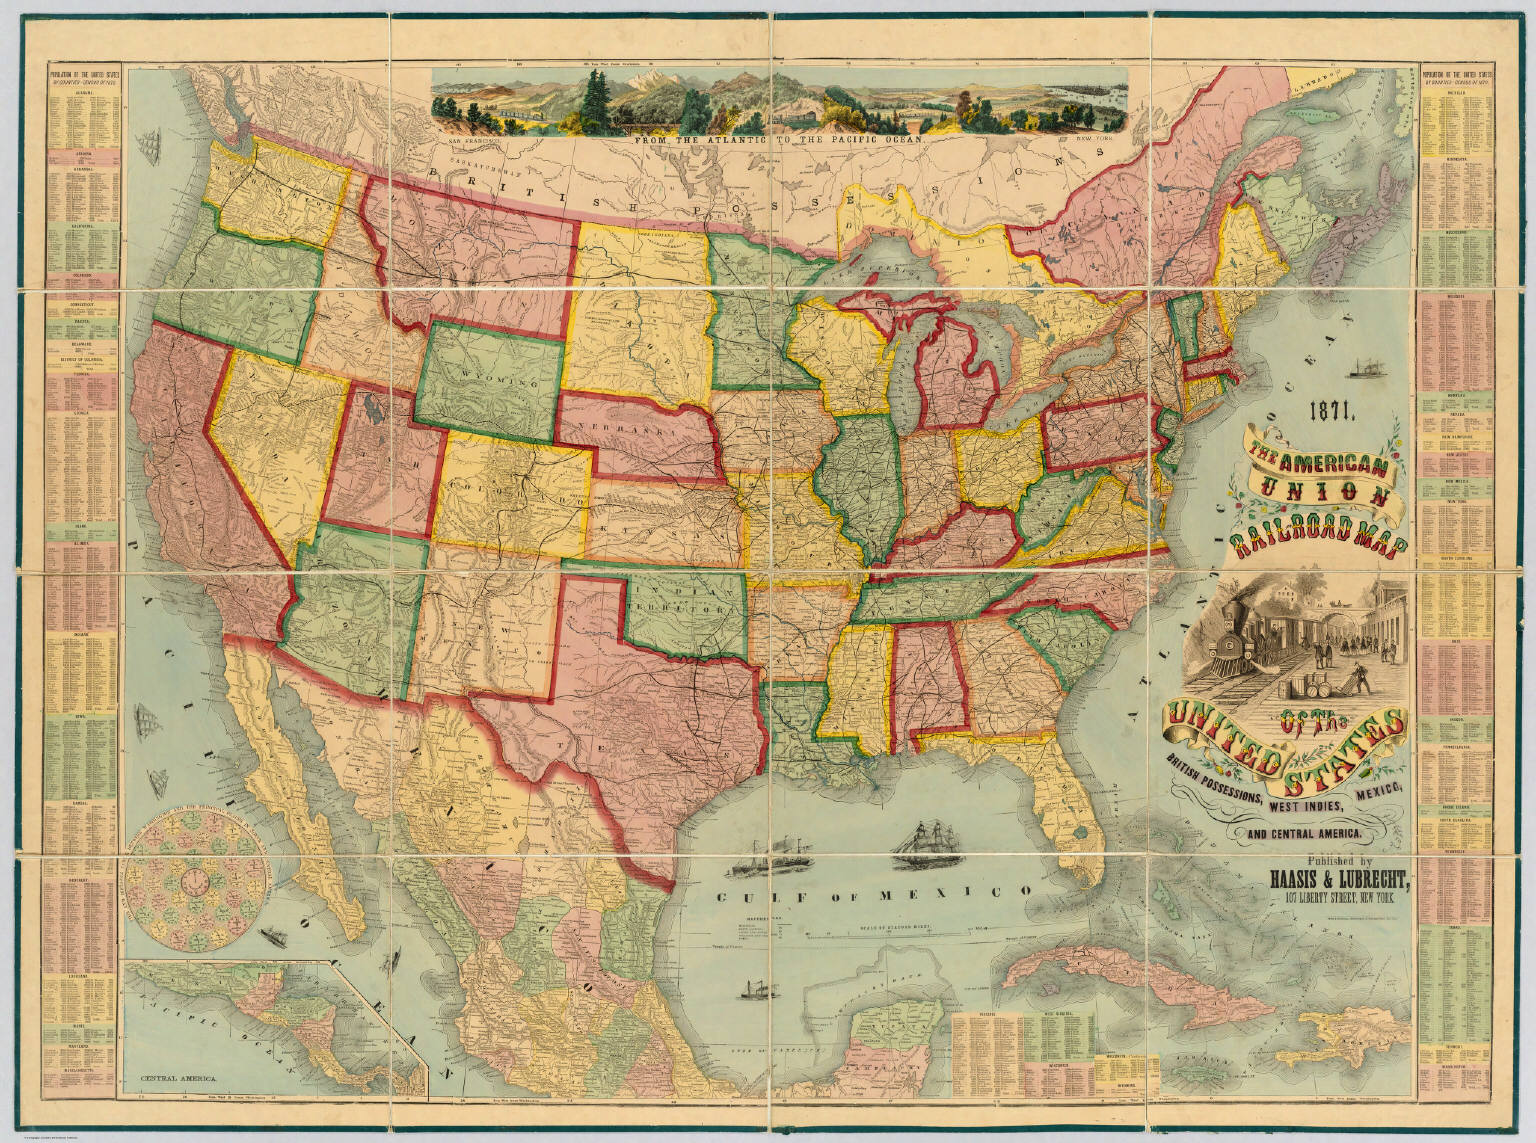 American Union Railroad Map Of The United States David Rumsey - Us transcontinental railroad map